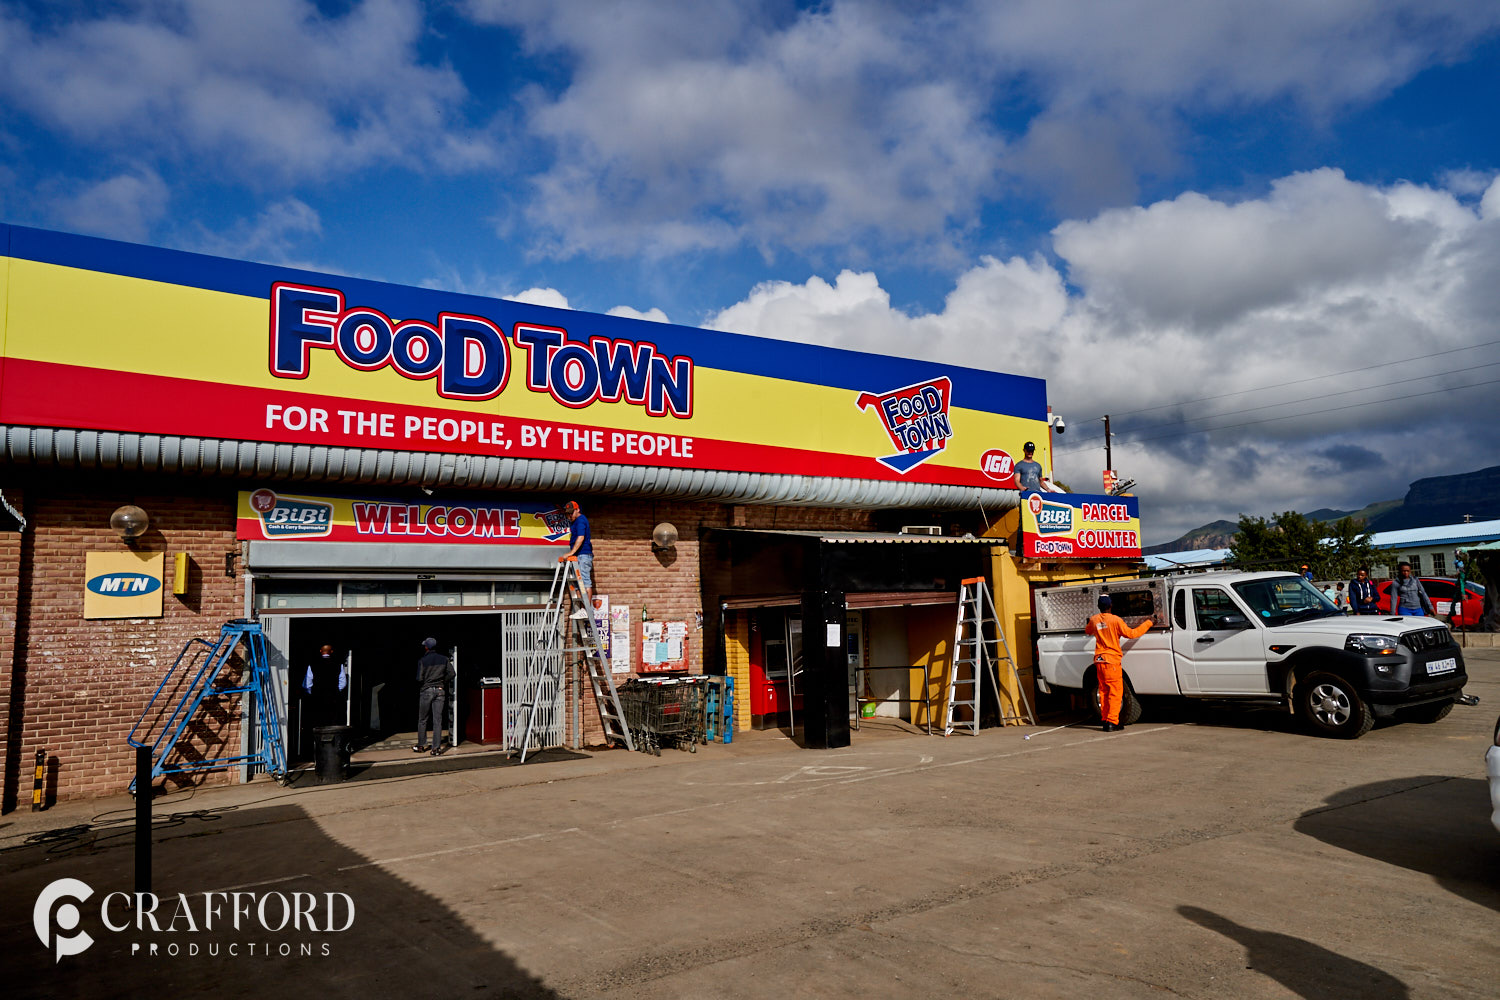 Commercial business photography in the Free State